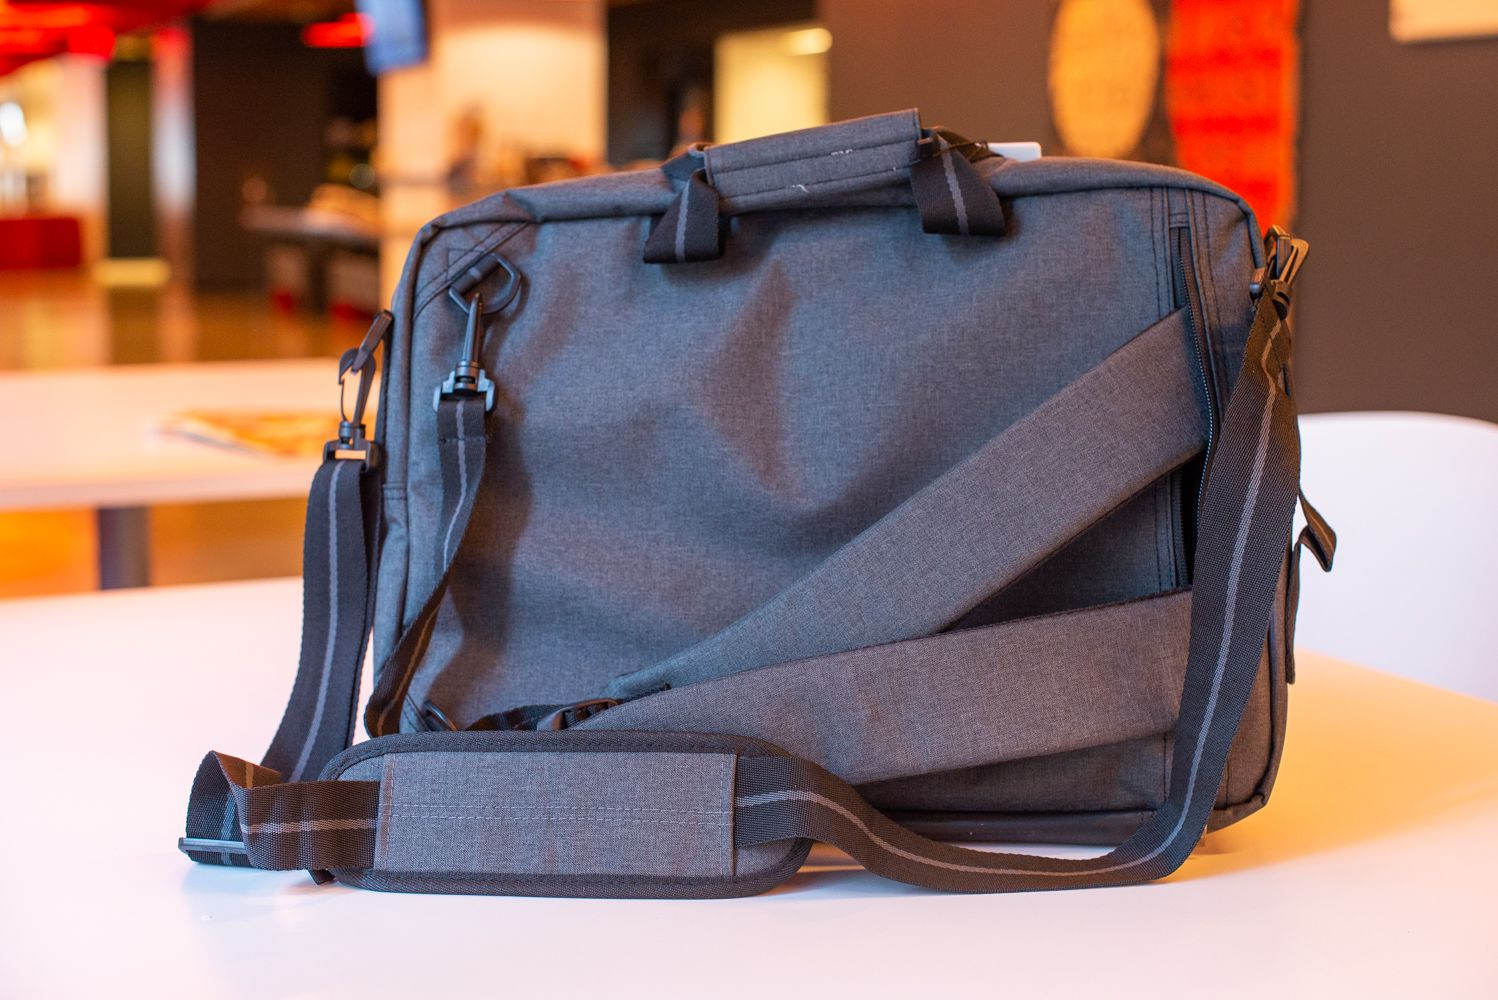 94e94f10b1 The 13 Best Laptop Bags of 2019